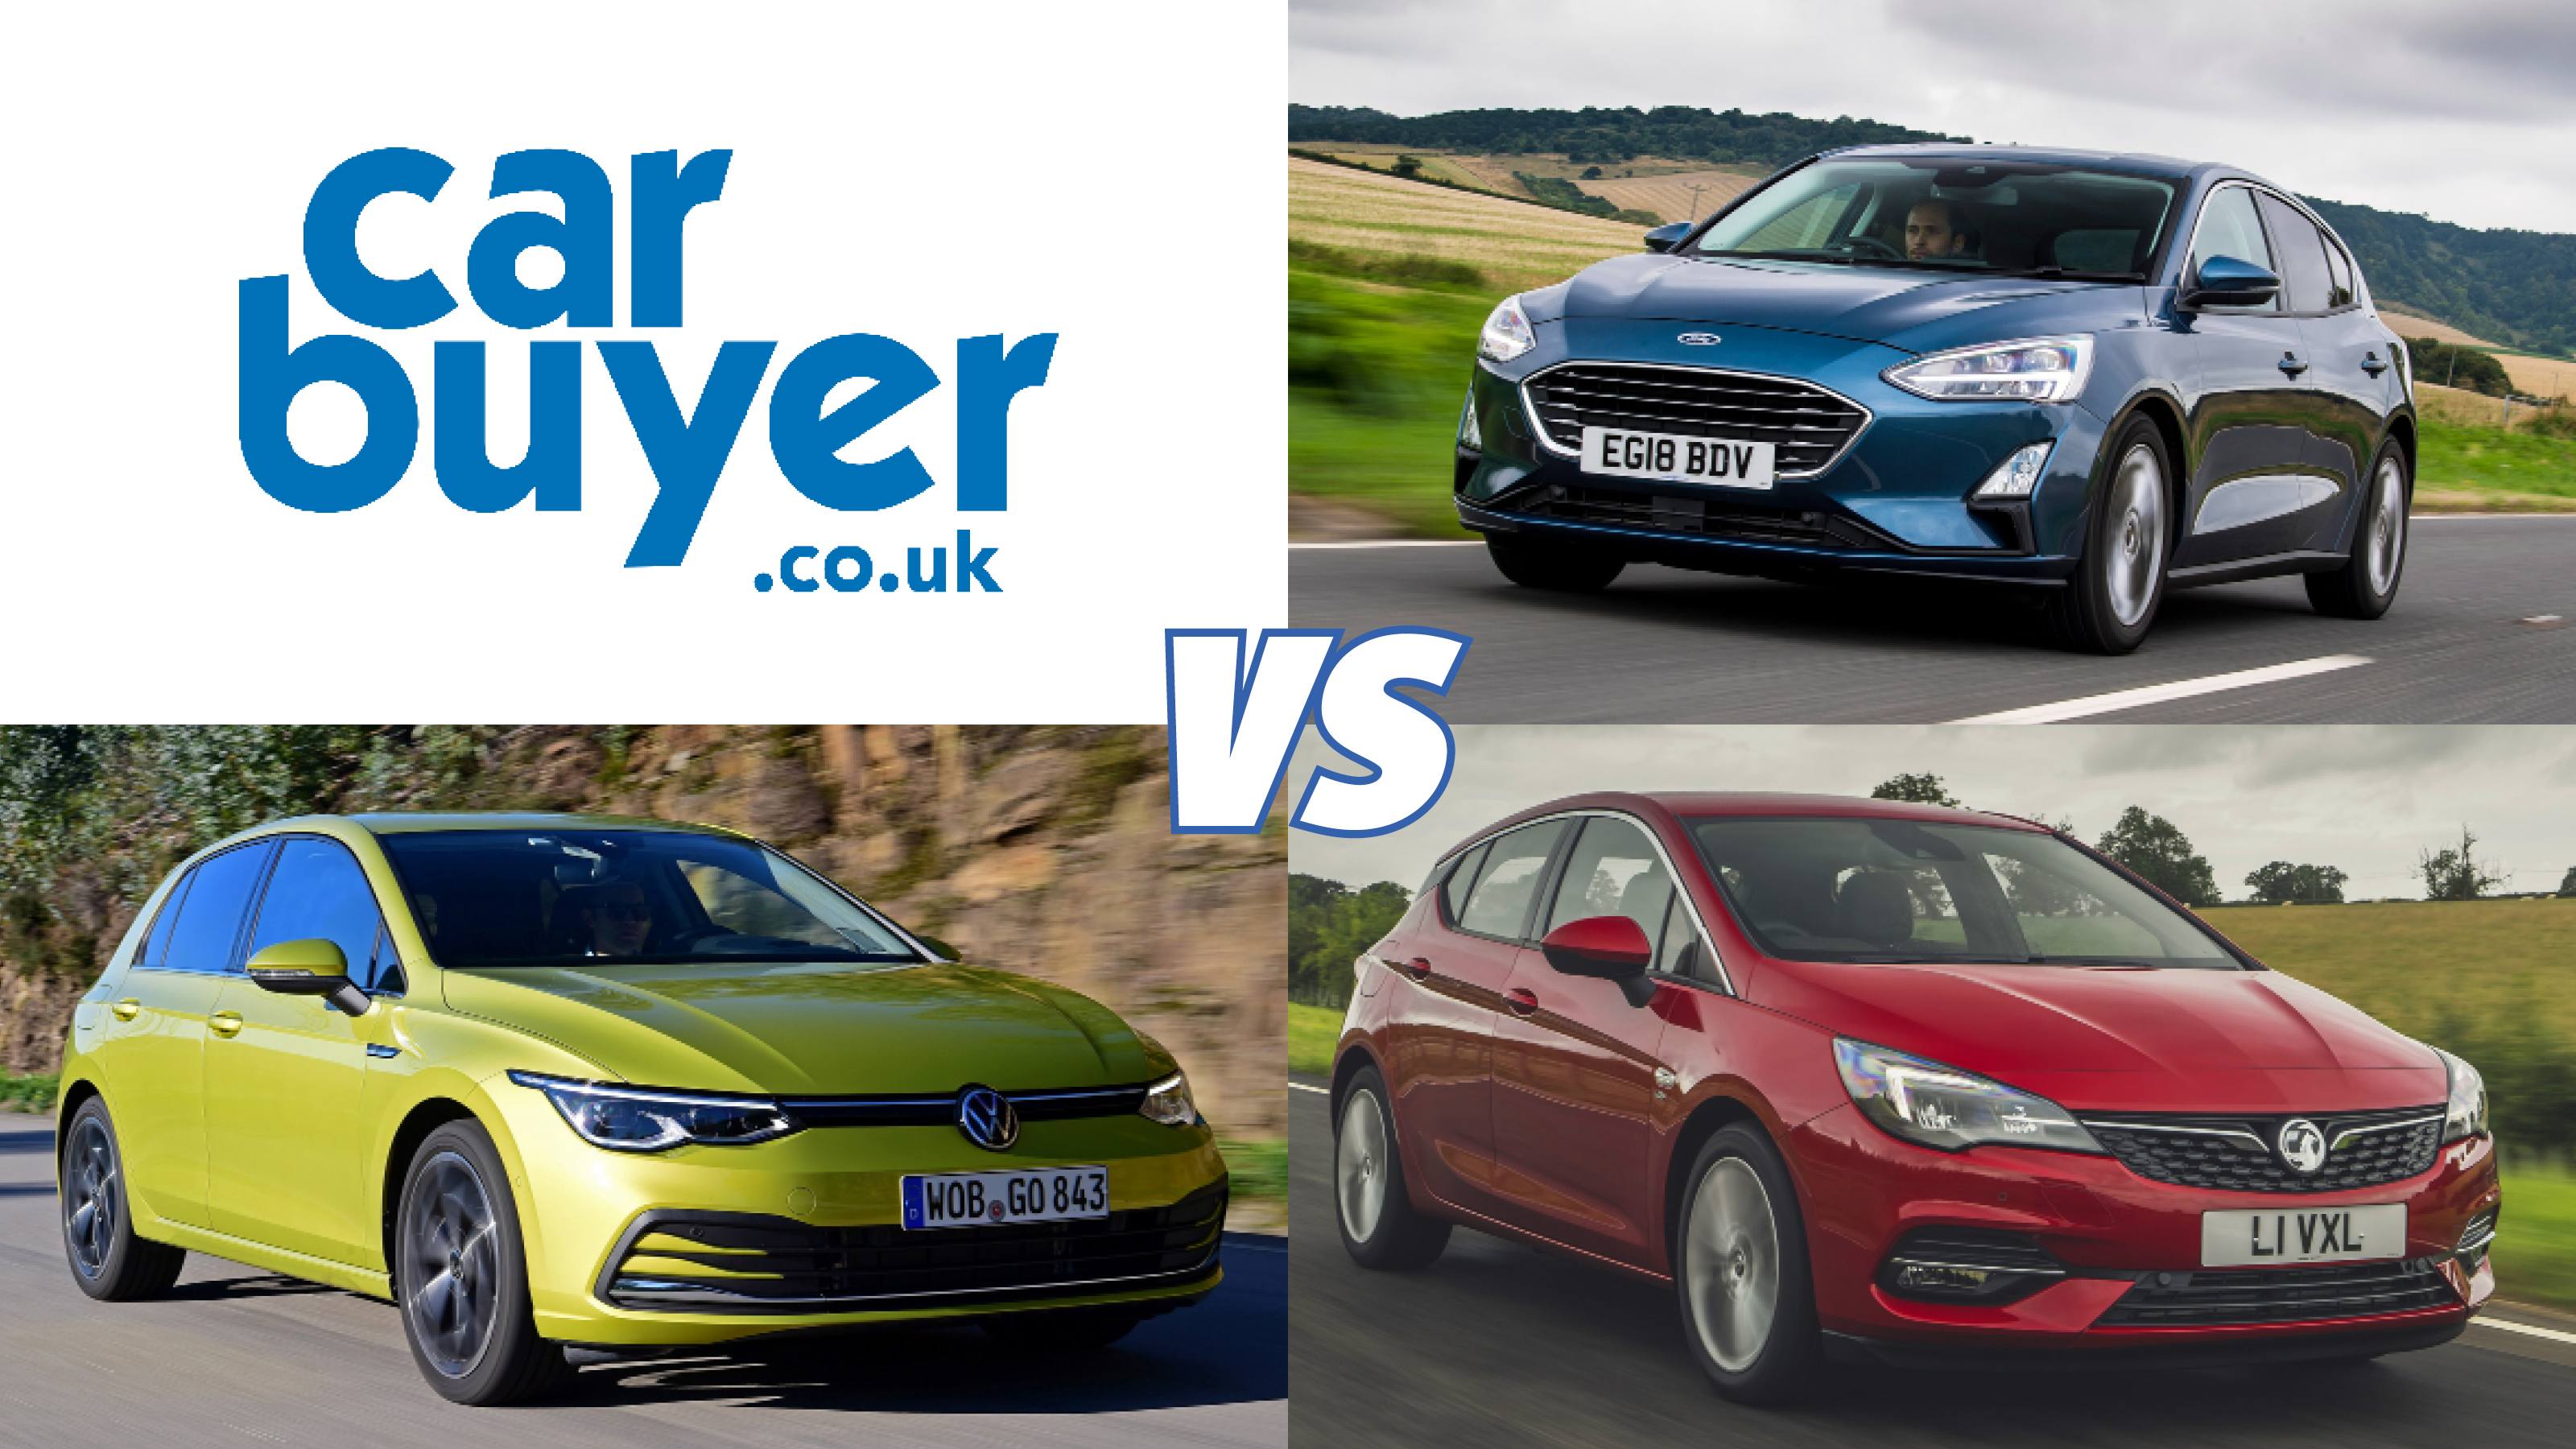 New Ford Focus Vs Vw Golf Vs Vauxhall Astra Rivals Comparison Carbuyer